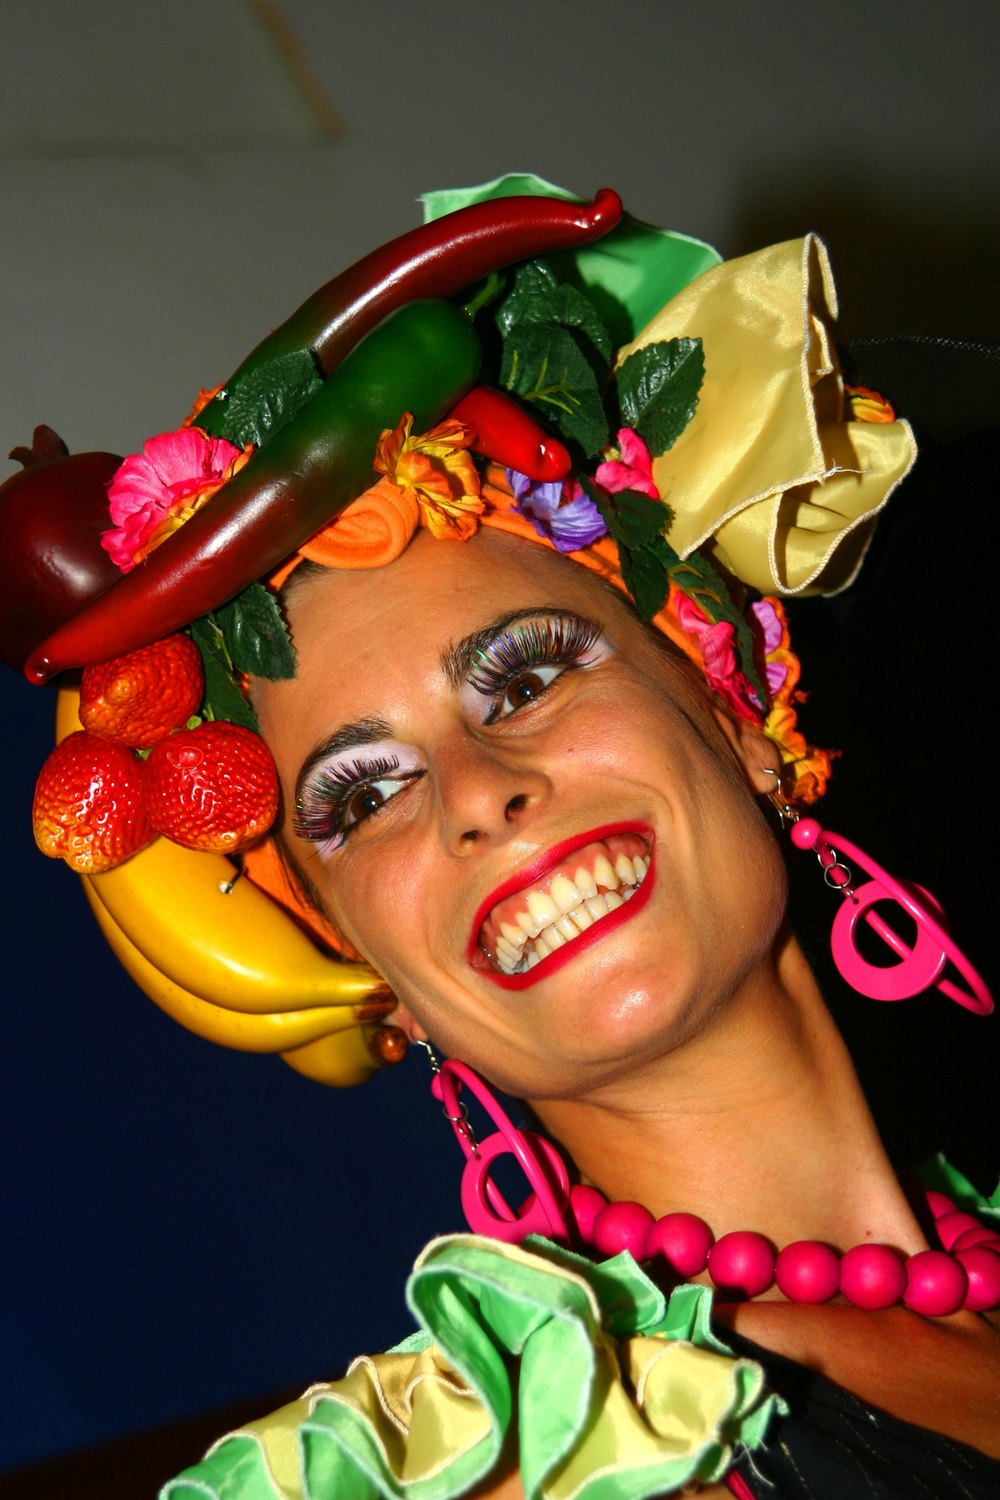 Lady with fruit hat1.jpg